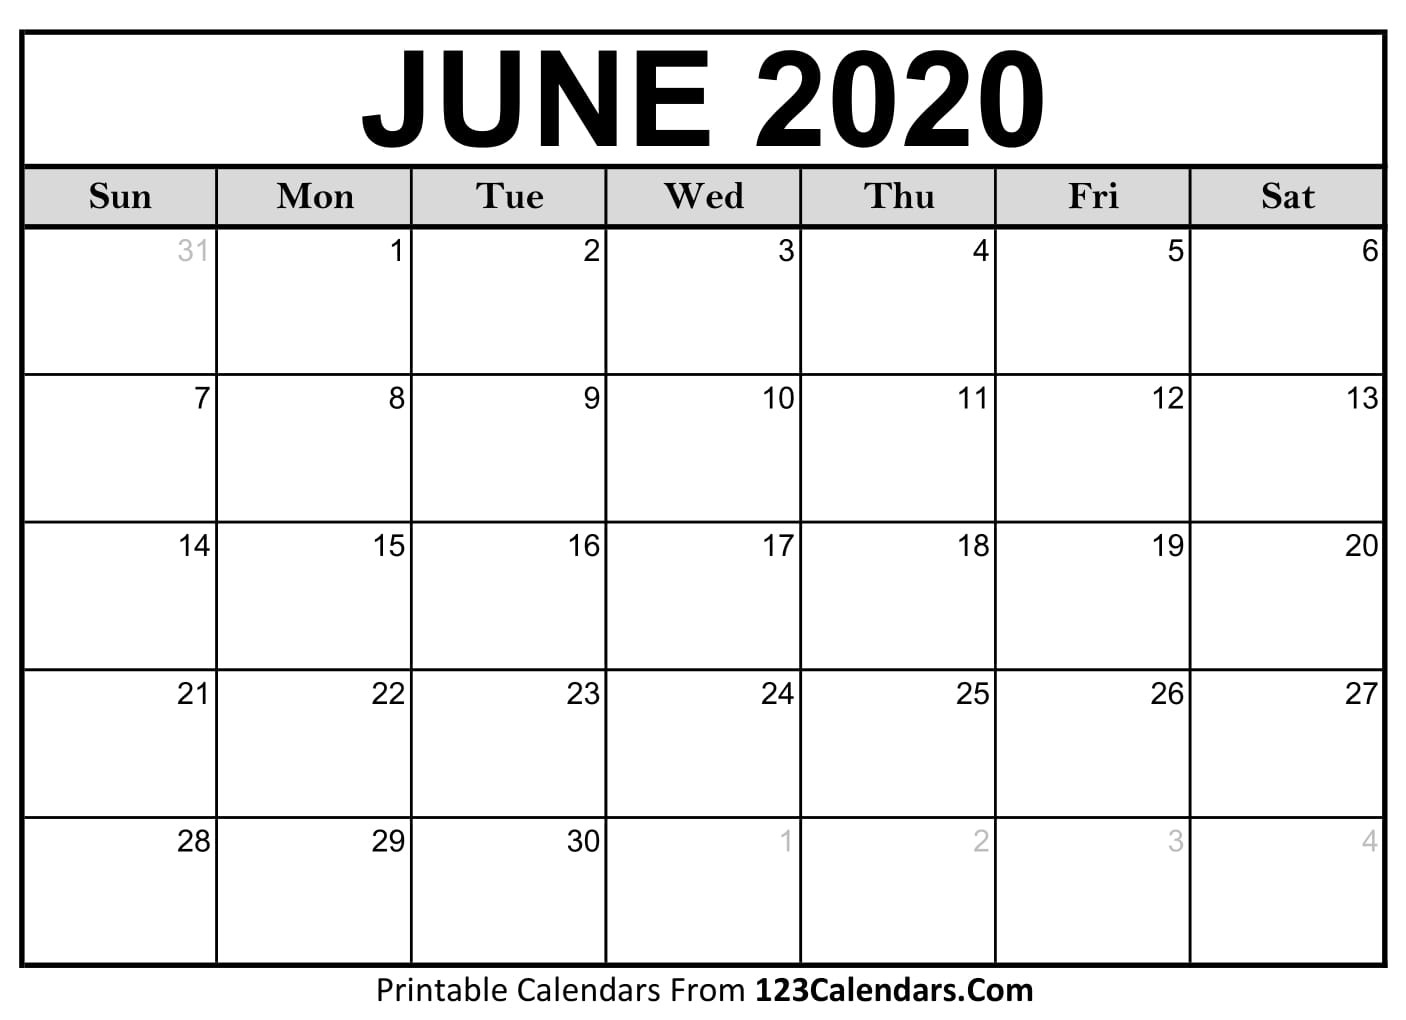 June 2020 Printable Calendar | 123Calendars-Summer Calendar Blank 2020